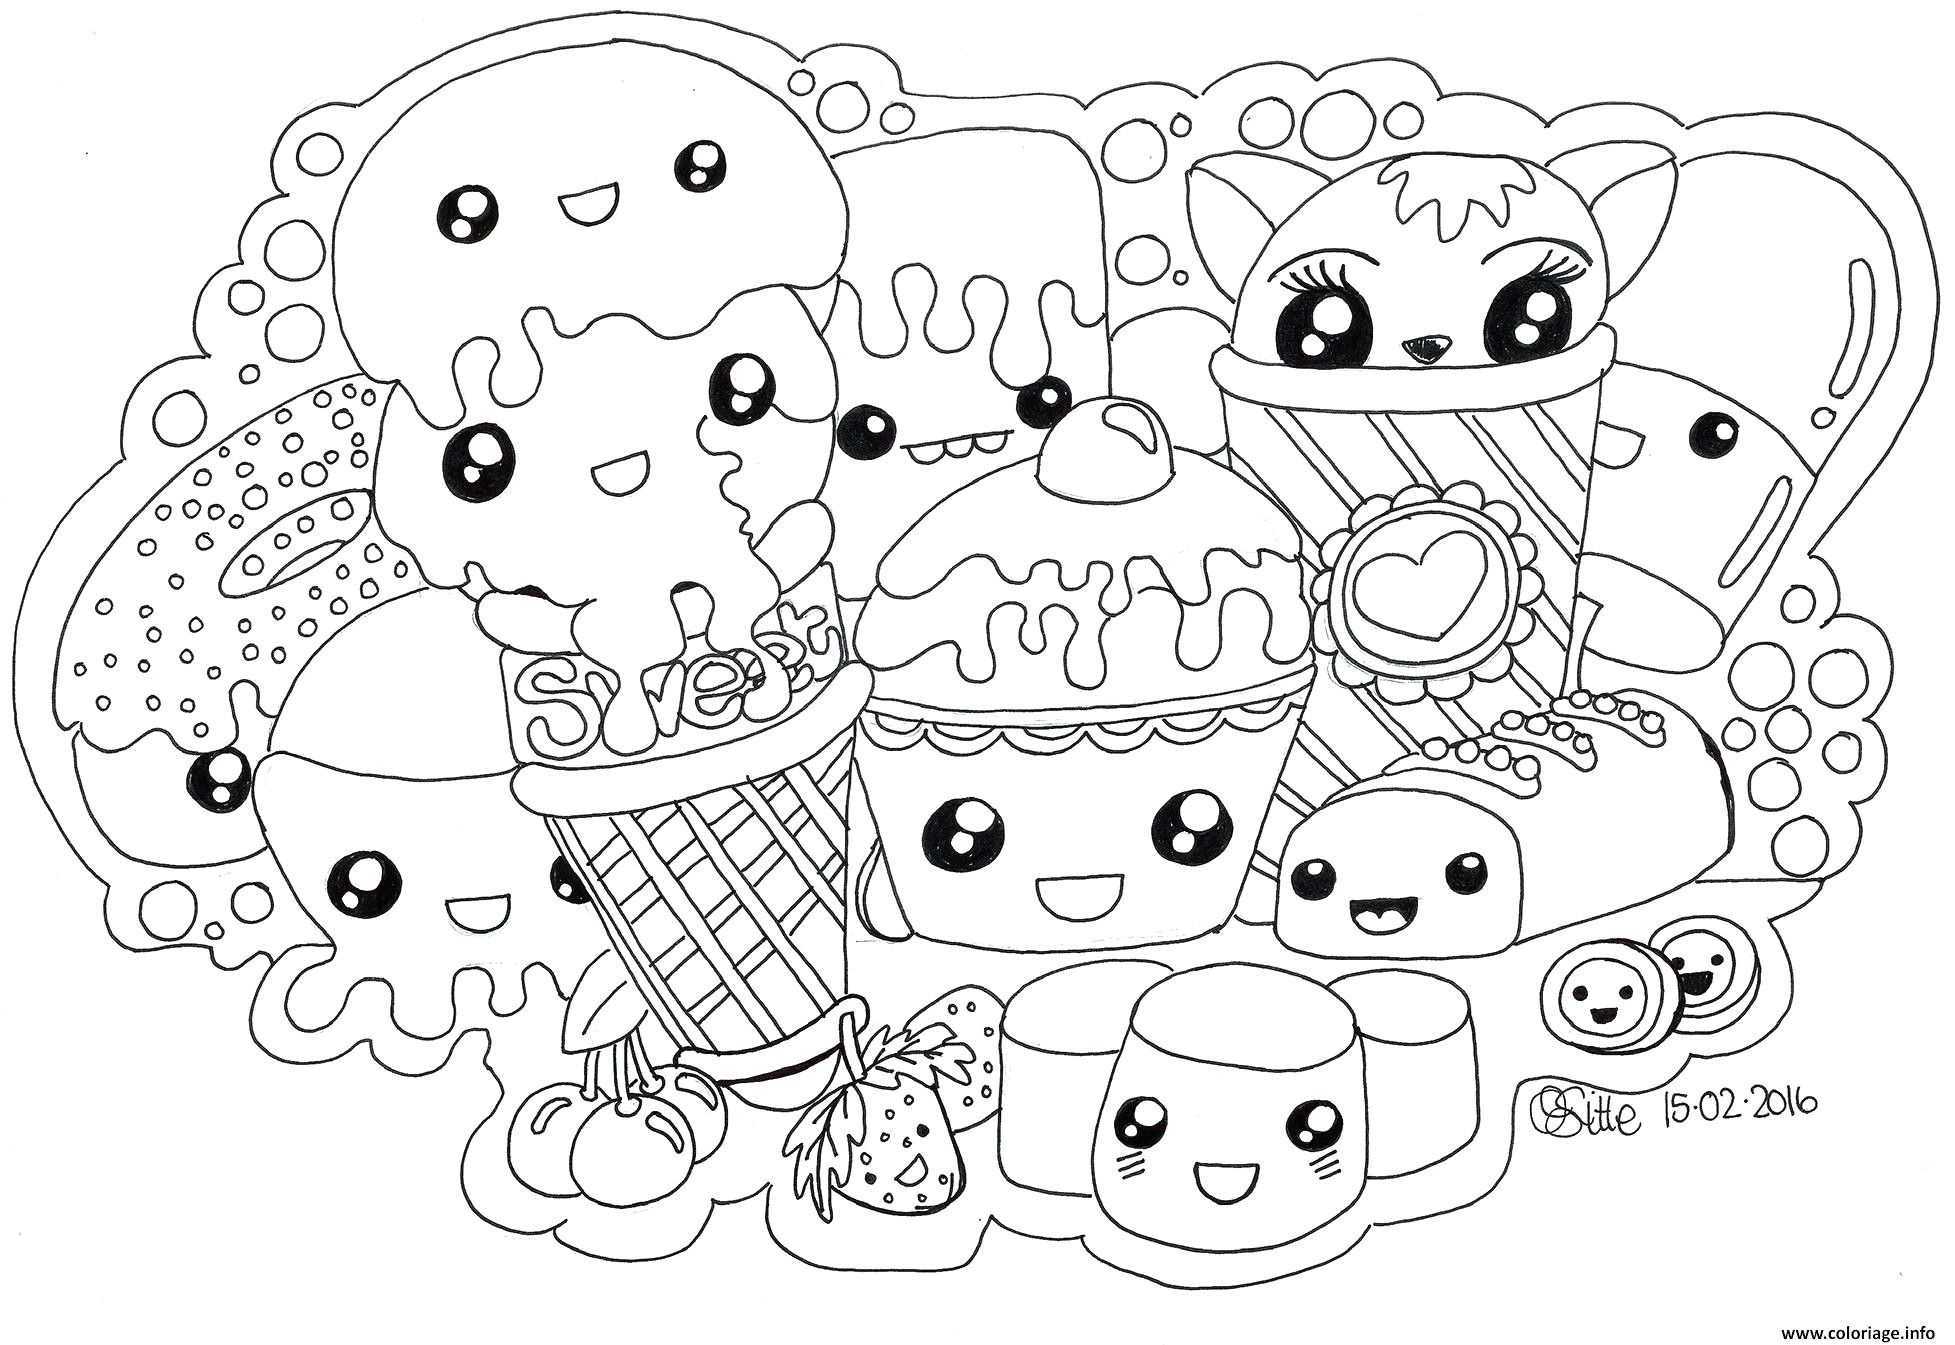 Coloriage Kawaii Sweets Colour Manga Cute Dessin Avec